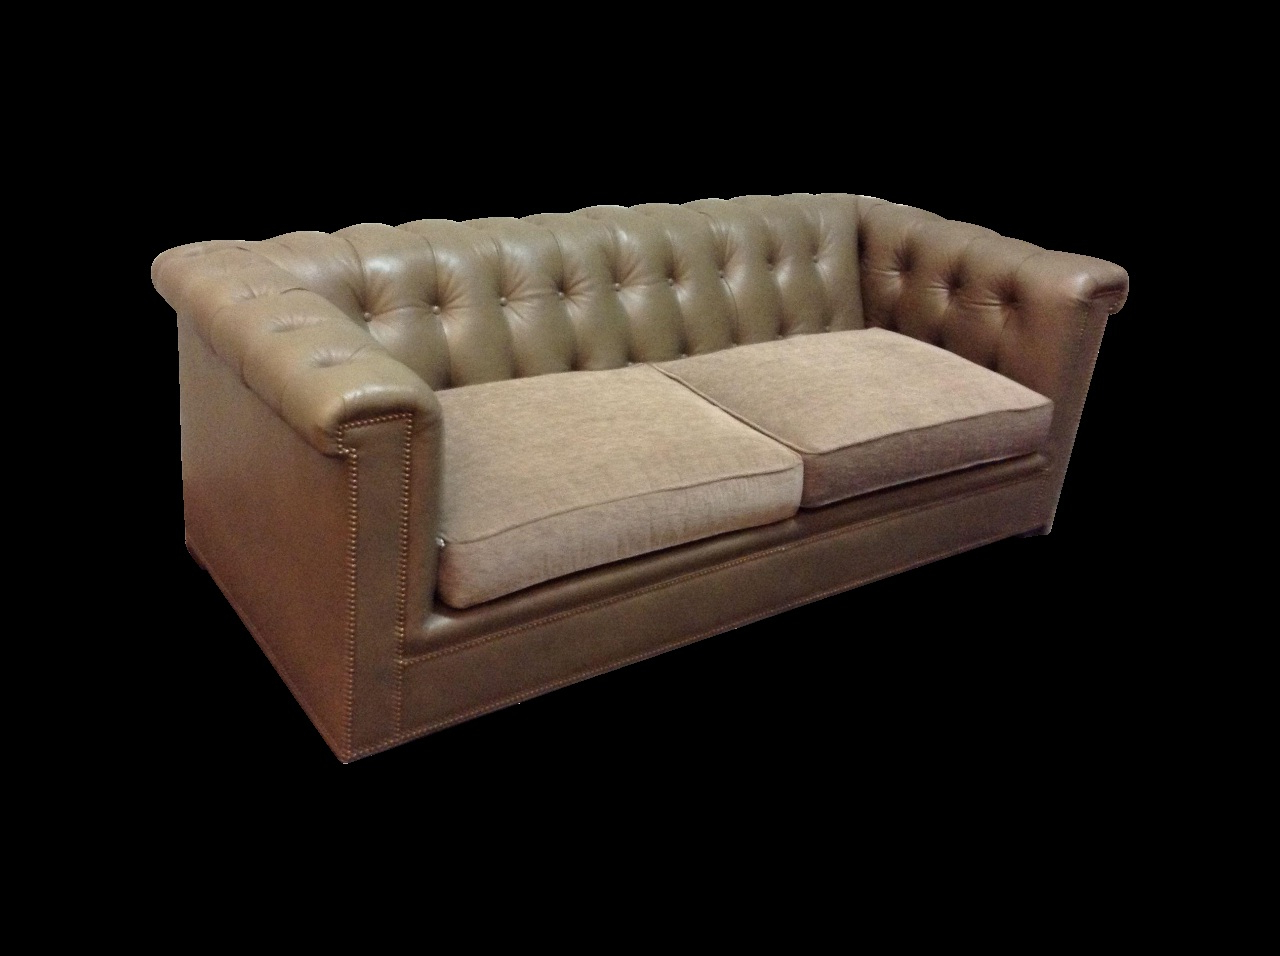 Most Recently Released Walter Leather Sofa Fresh Hickory Chair Kent Tufted Leather Sofa On With Walter Leather Sofa Chairs (Gallery 14 of 20)